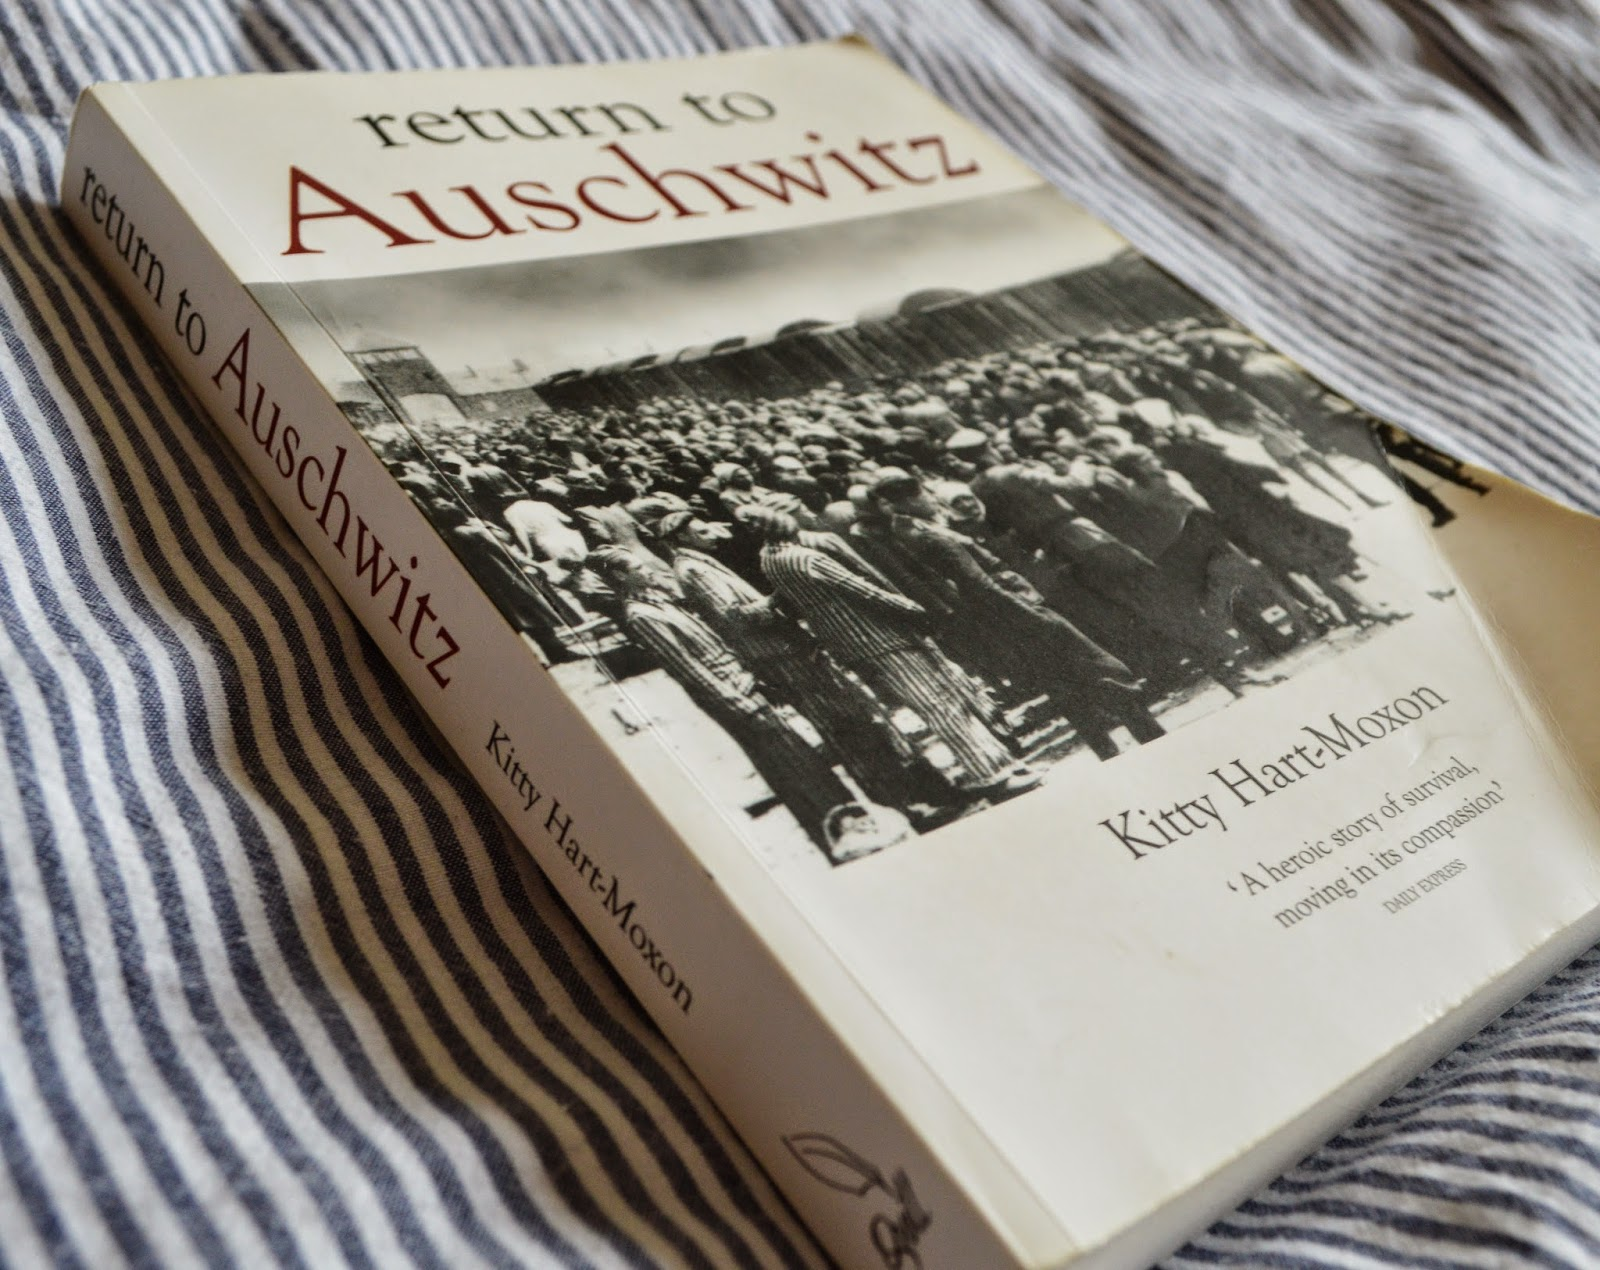 Return to Auschwitz, book, review, Kitty Hart-Moxon, autobiography, history, concentration camp, holocaust, survivor, paperback